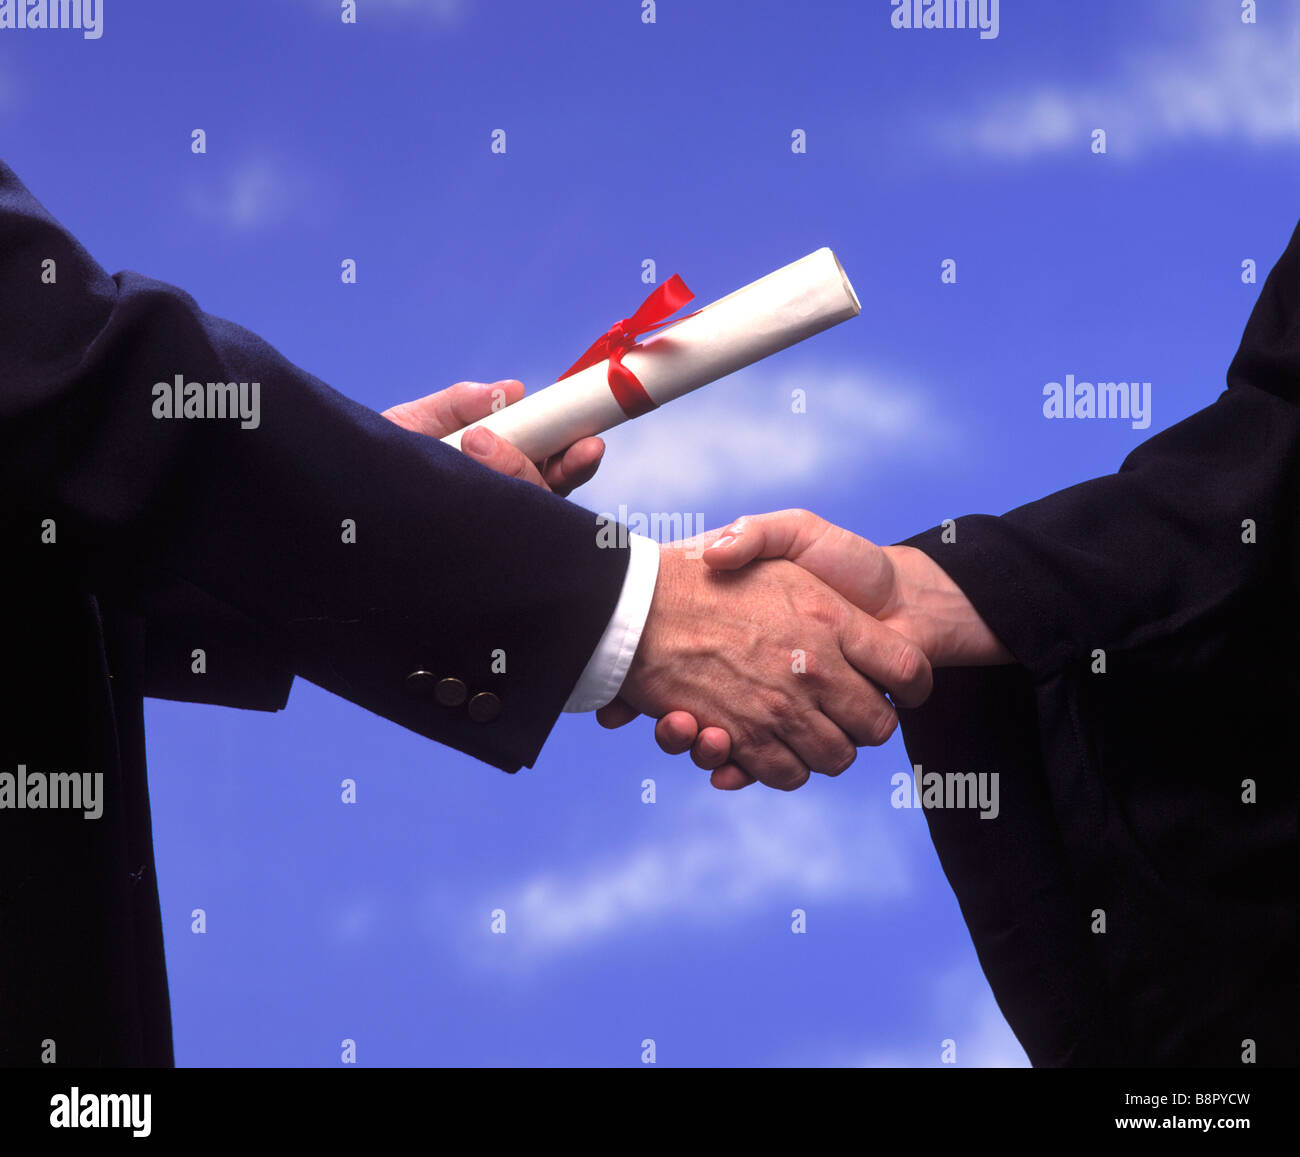 A diploma is presented to a college graduate with a handshake - Stock Image